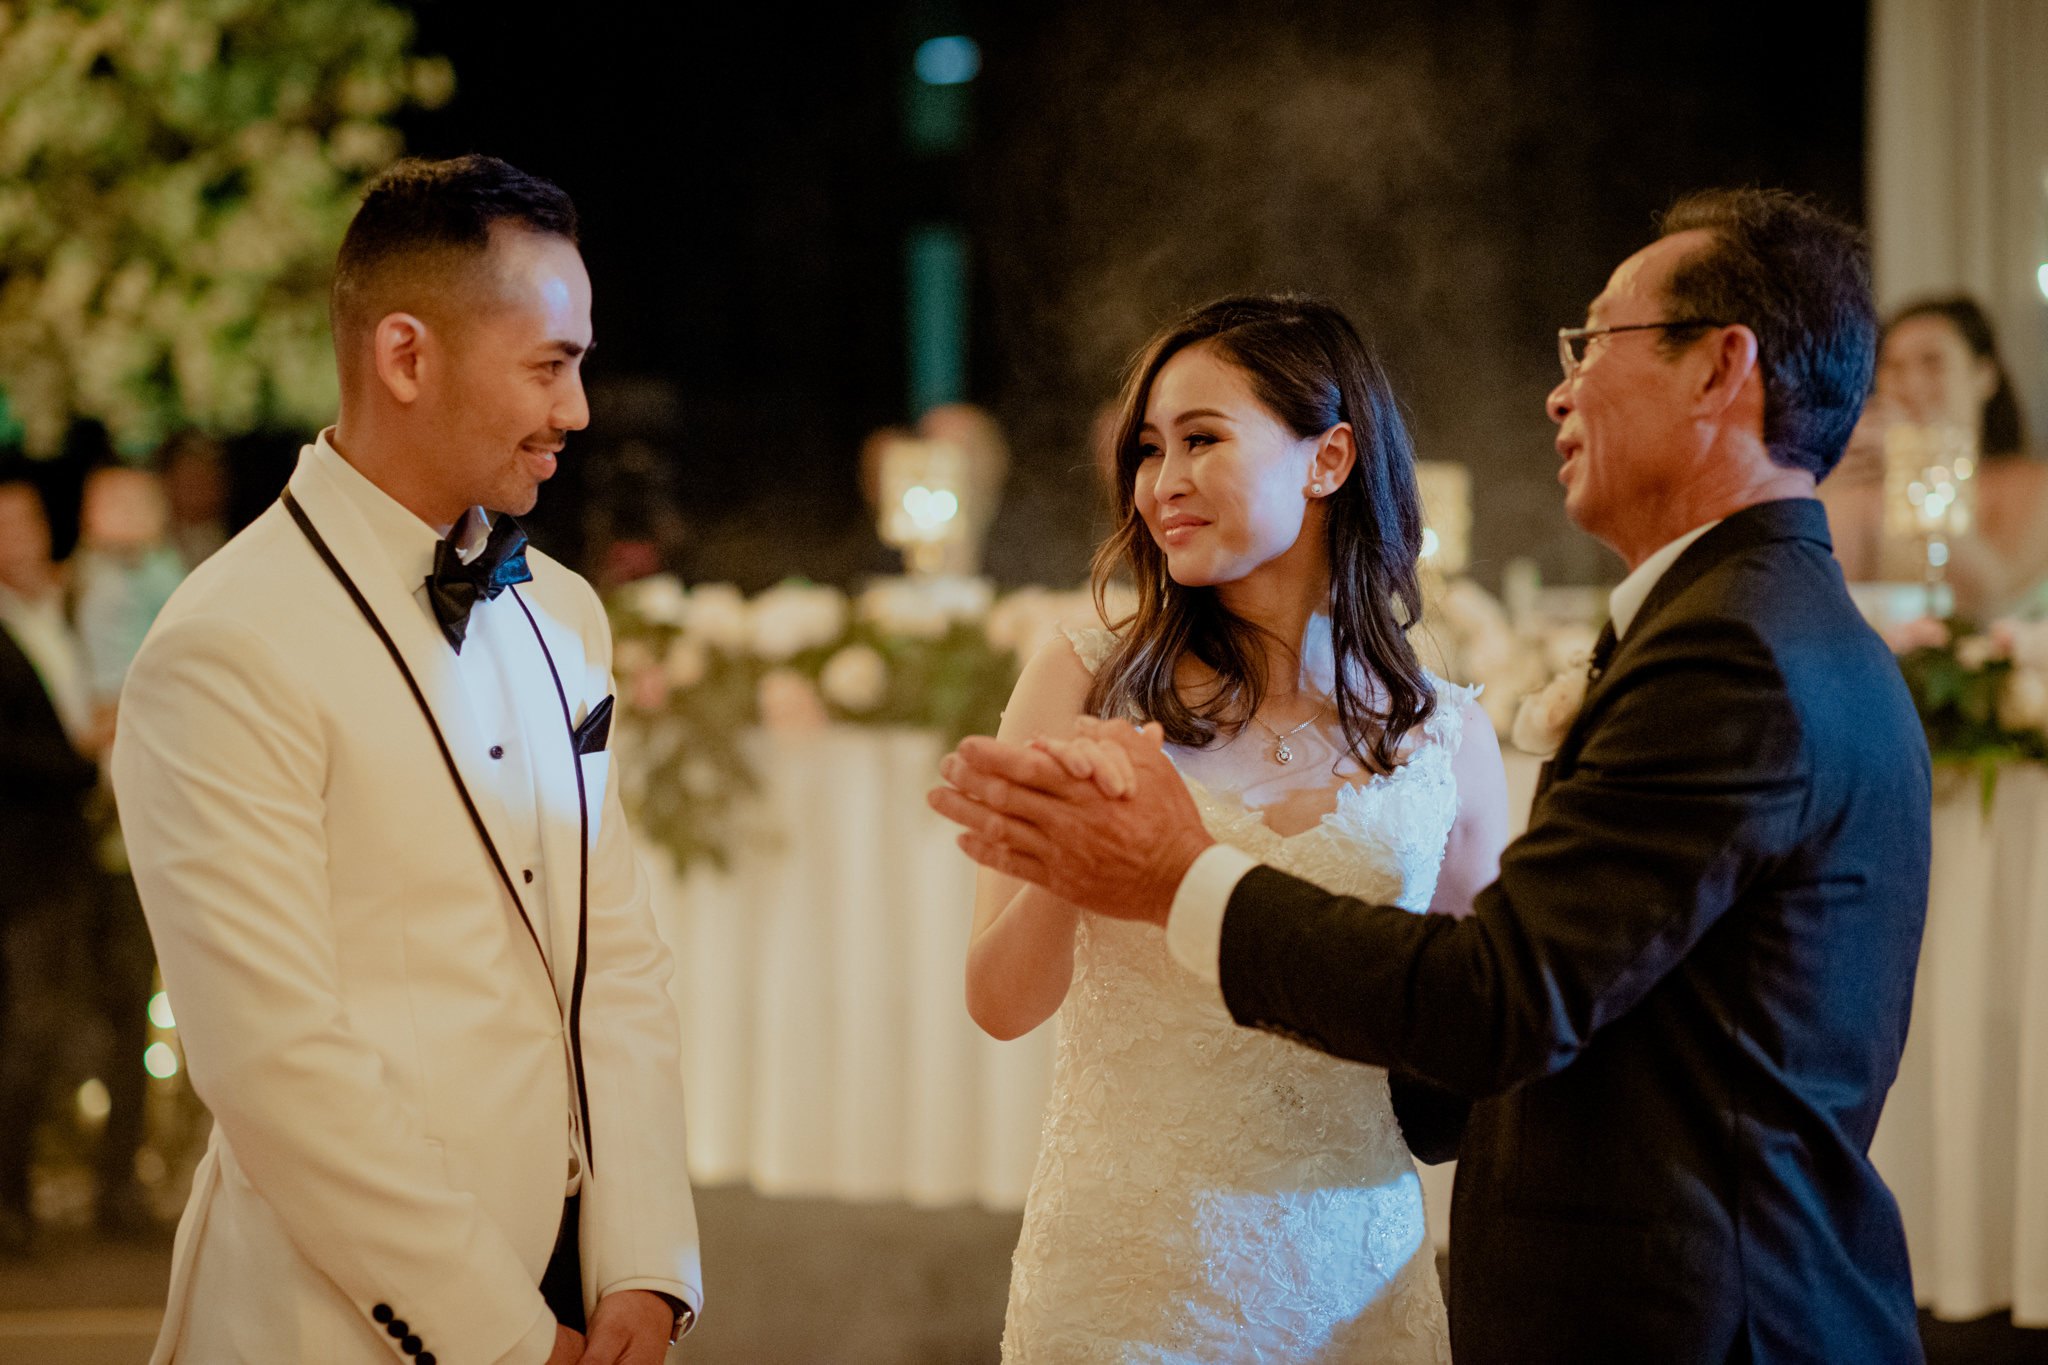 A groom approaches his bride who is dancing with her father at their wedding